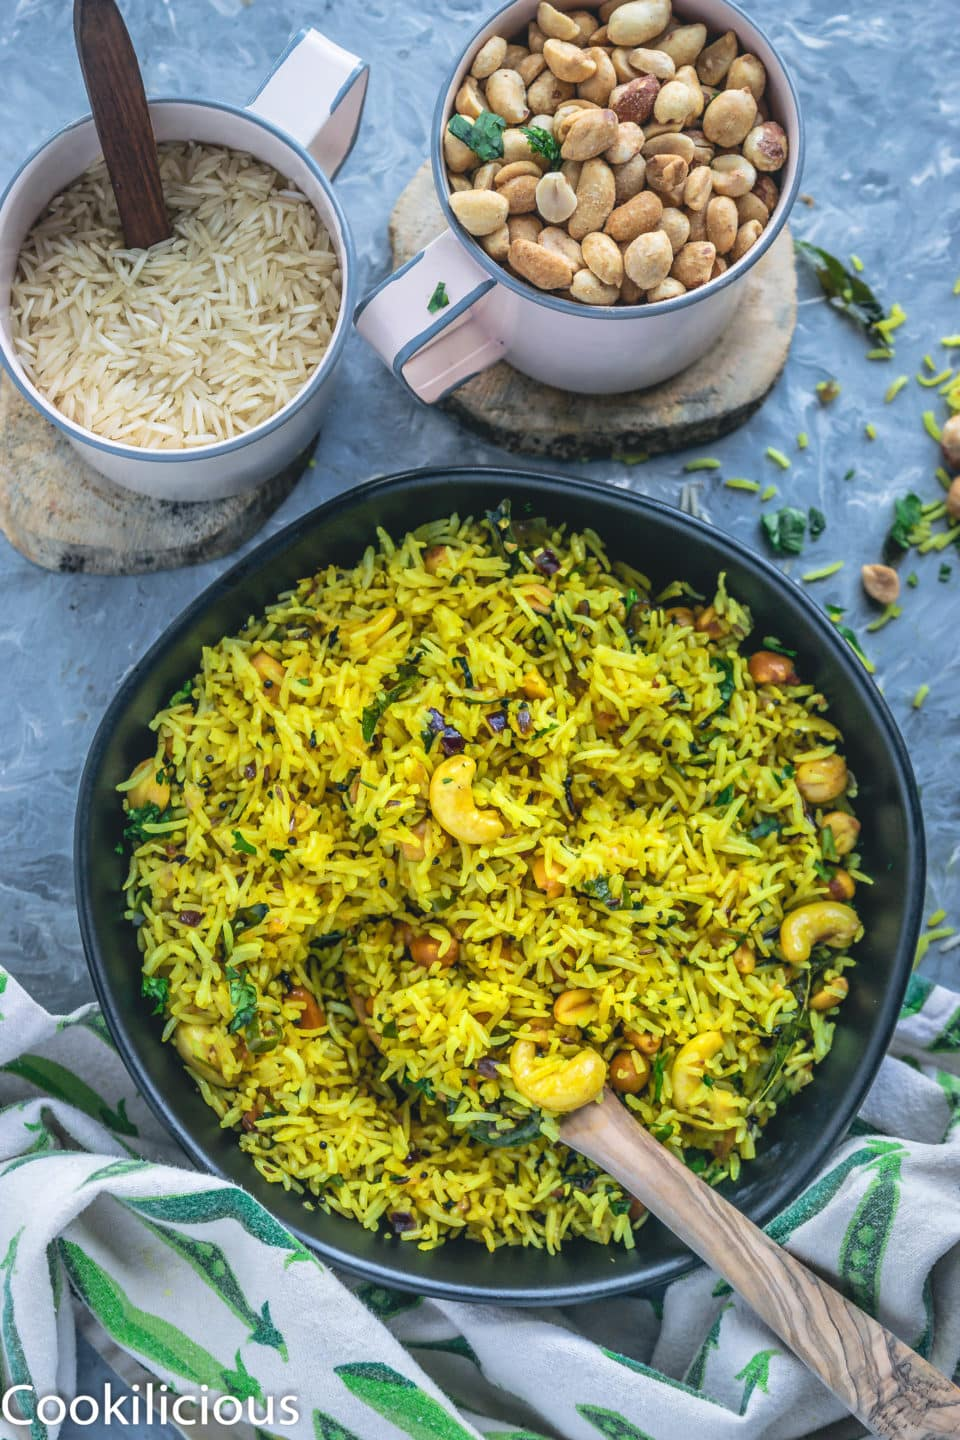 a bowl full of Masale Bhat with a wooden spoon in it and a mug full of rice and another mug filled with peanuts on the side